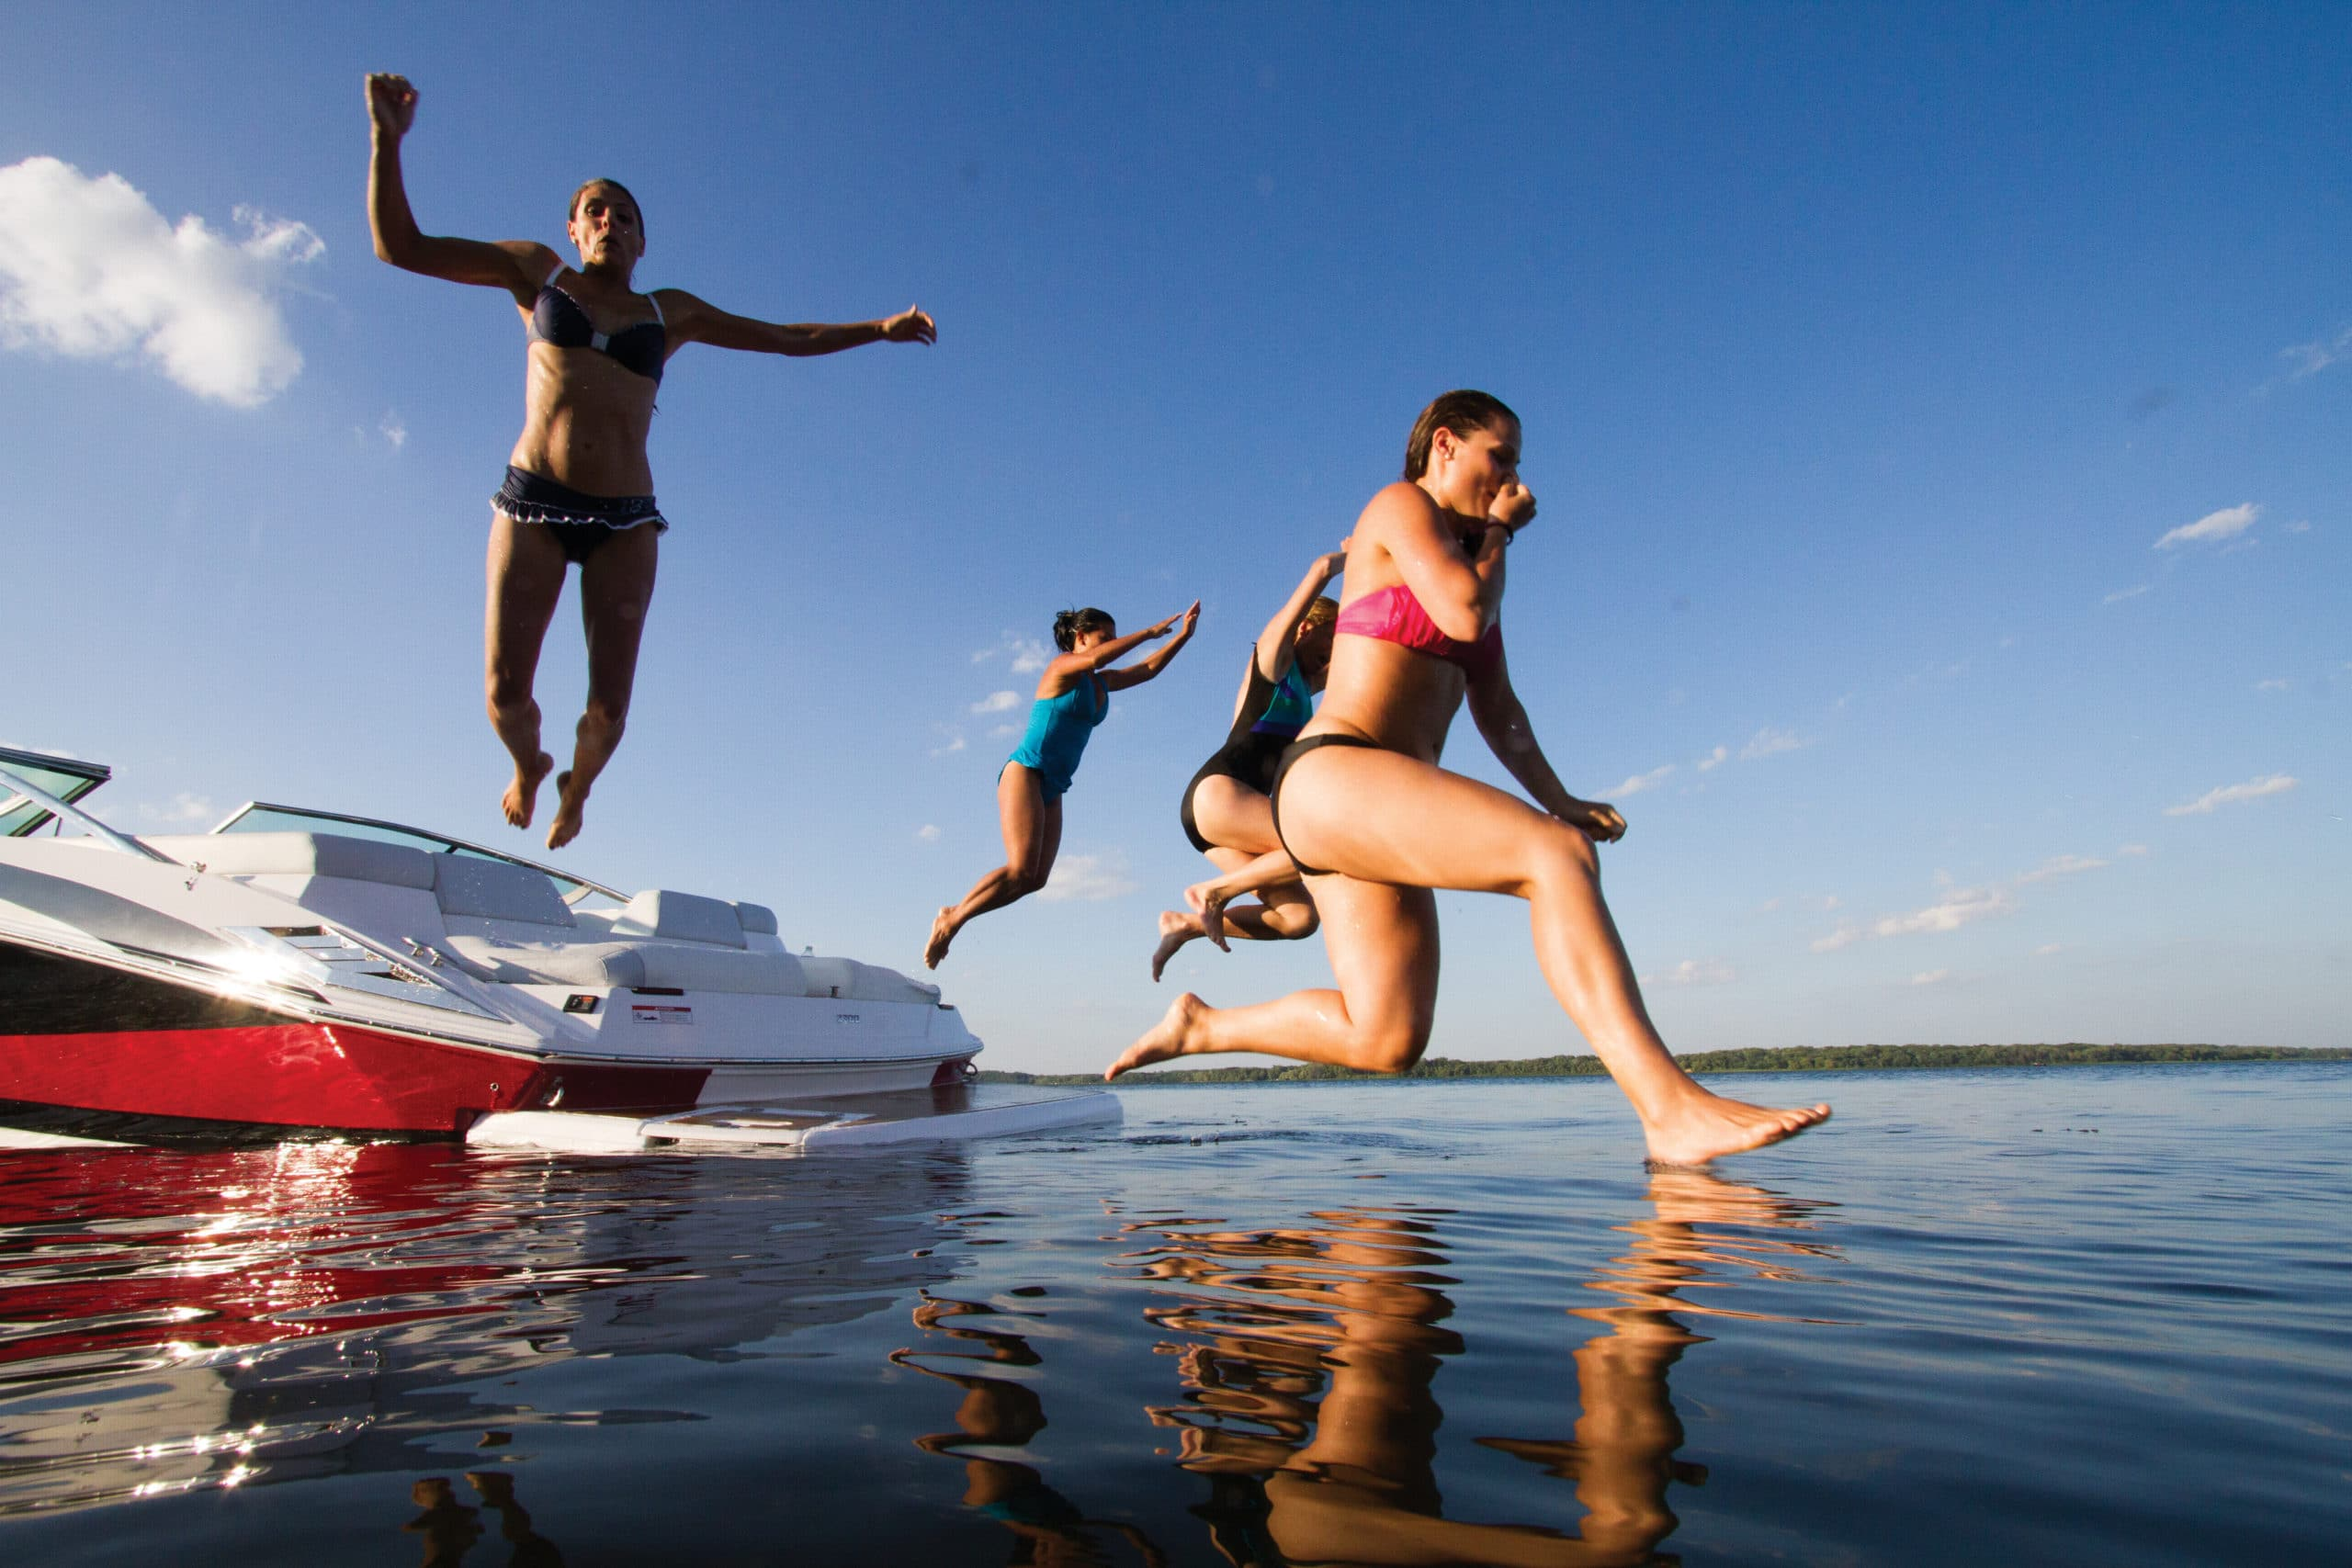 kids jumping into water from boat